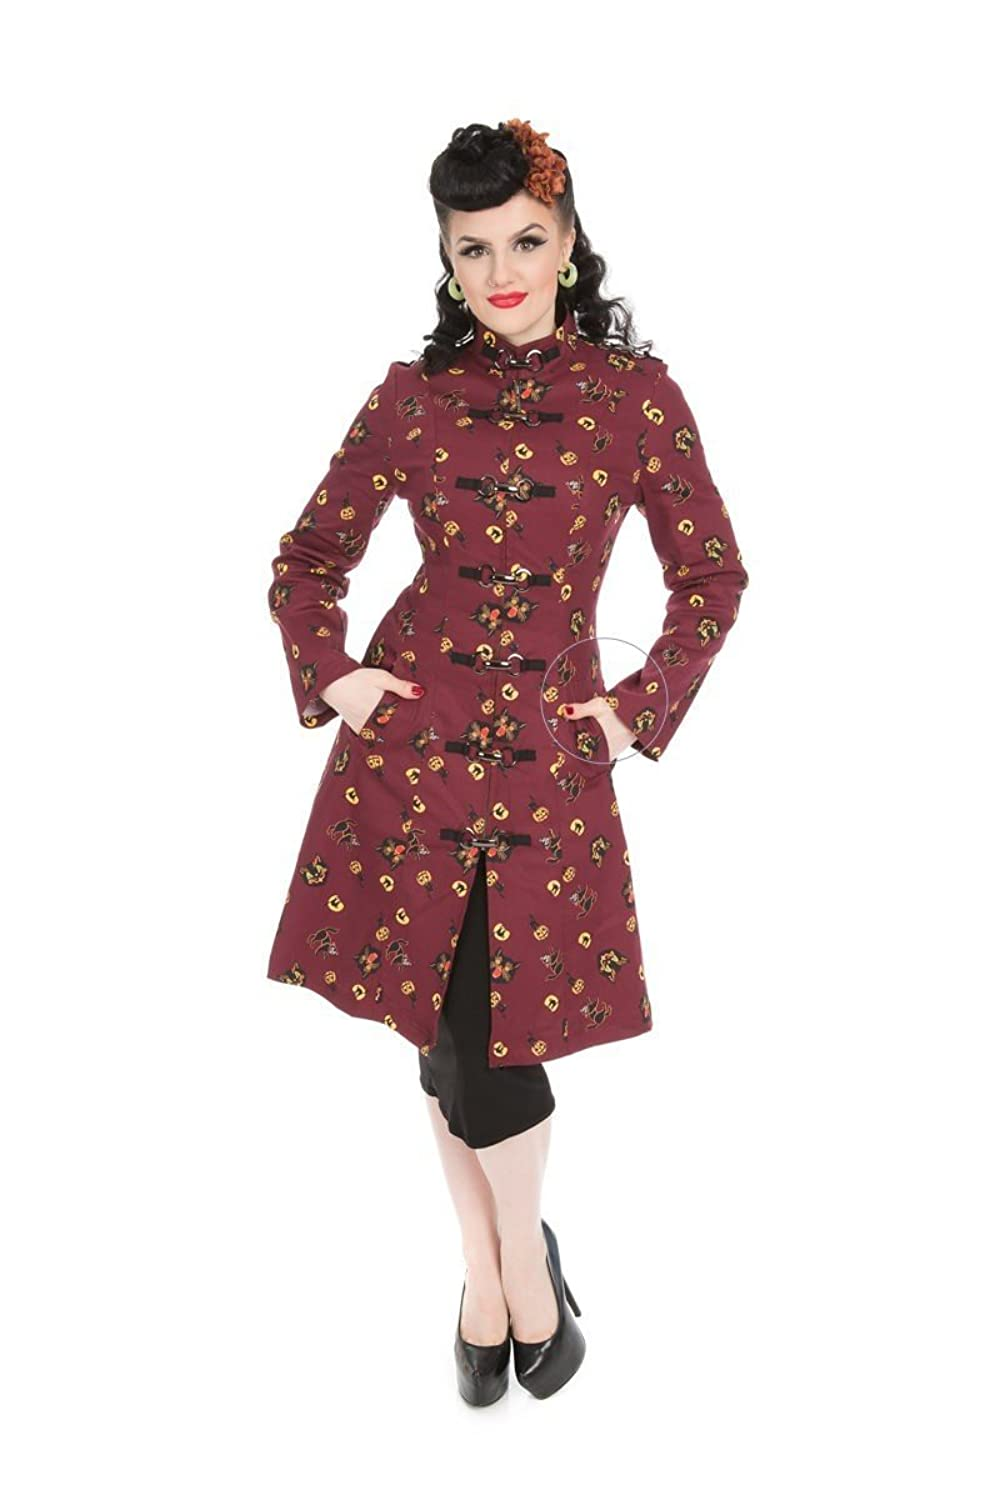 1950s Jackets, Coats, Bolero | Swing, Pin Up, Rockabilly Hearts & Roses Strait Jacket in Halloween Kitty Print (Shipped from The US US Sizes) $64.88 AT vintagedancer.com